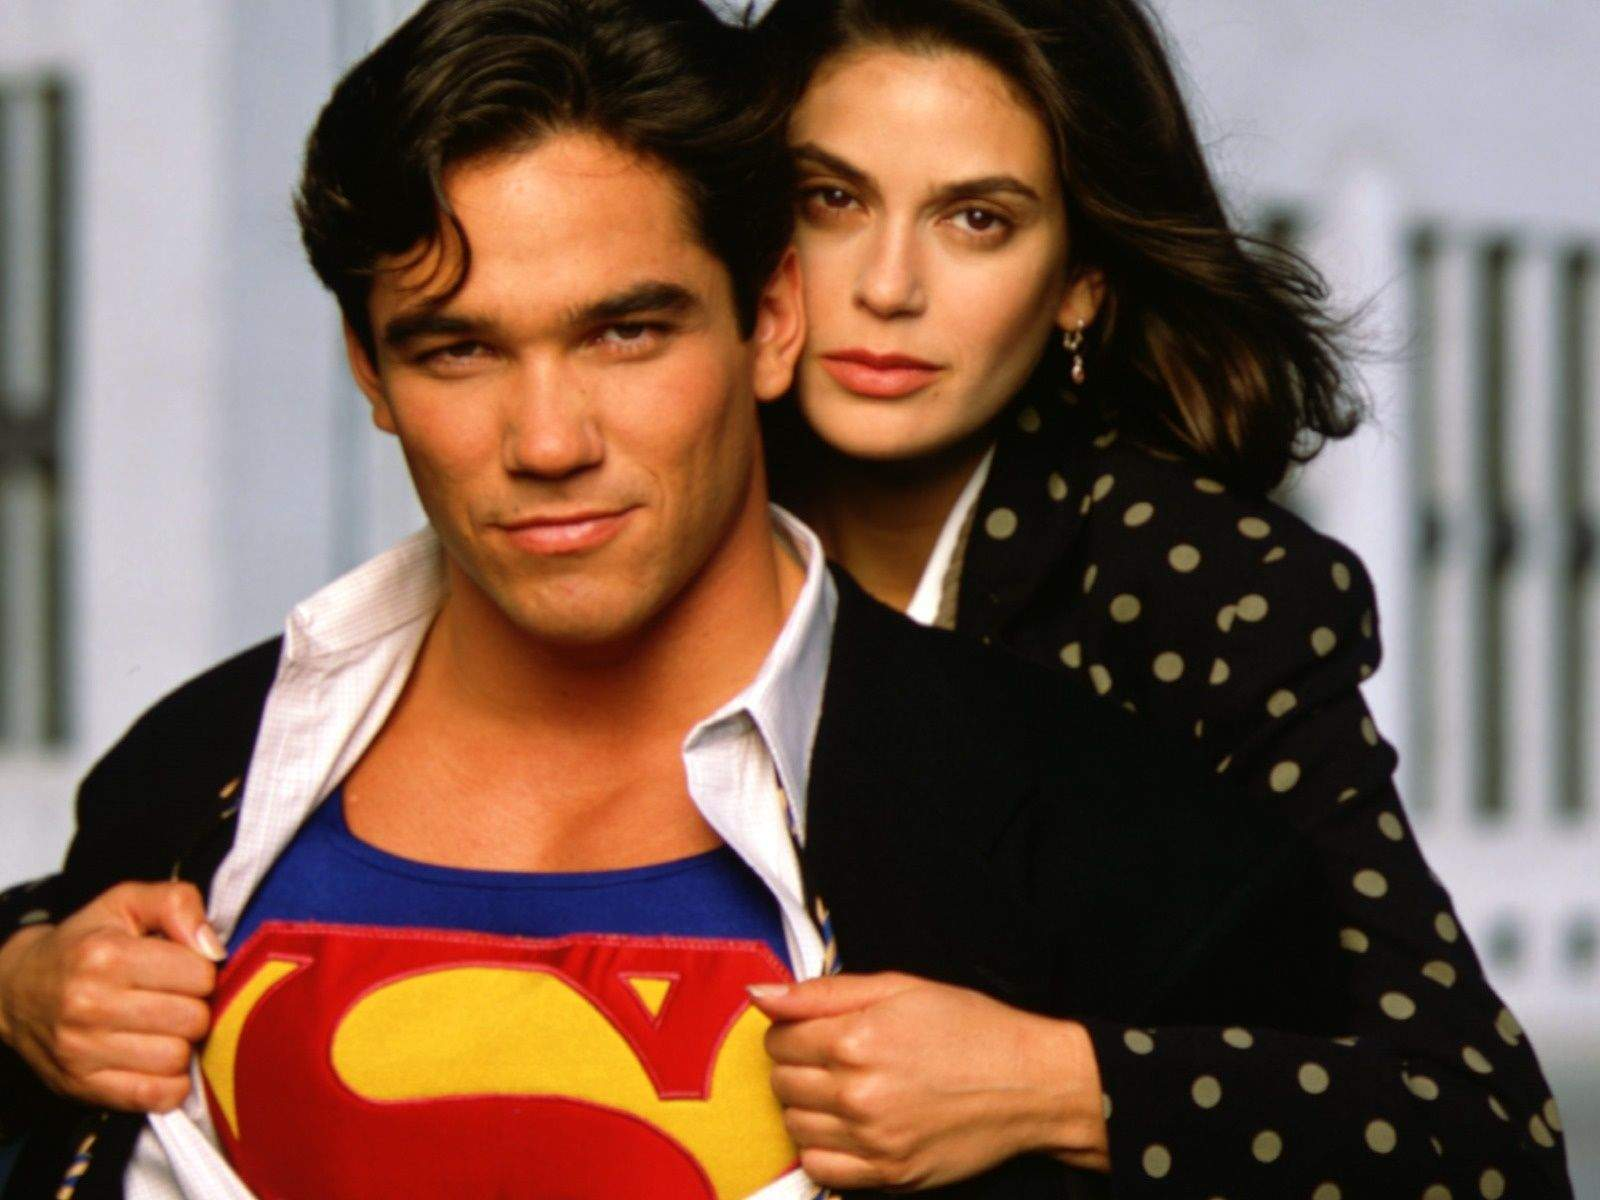 For years in the pages of DC, the status quo for Lois Lane and Clark Kent were the two coworkers who, even before their comic book wedding, essentially behaved like an old married couple: bickering with one another, finishing each other's sentences, and generally acting like characters who had been stuck treading water for the past 50 years. Which is exactly what they were.Lois and Clark shook up the dynamic by taking both characters back to basics and developing their relationship from the first meeting. Sure, not every aspect of the show has held up (the special effects look a bit ropey) but as a character study showing how both became the people we know them as today, it was perfect.Photo: Warner Bros. Television